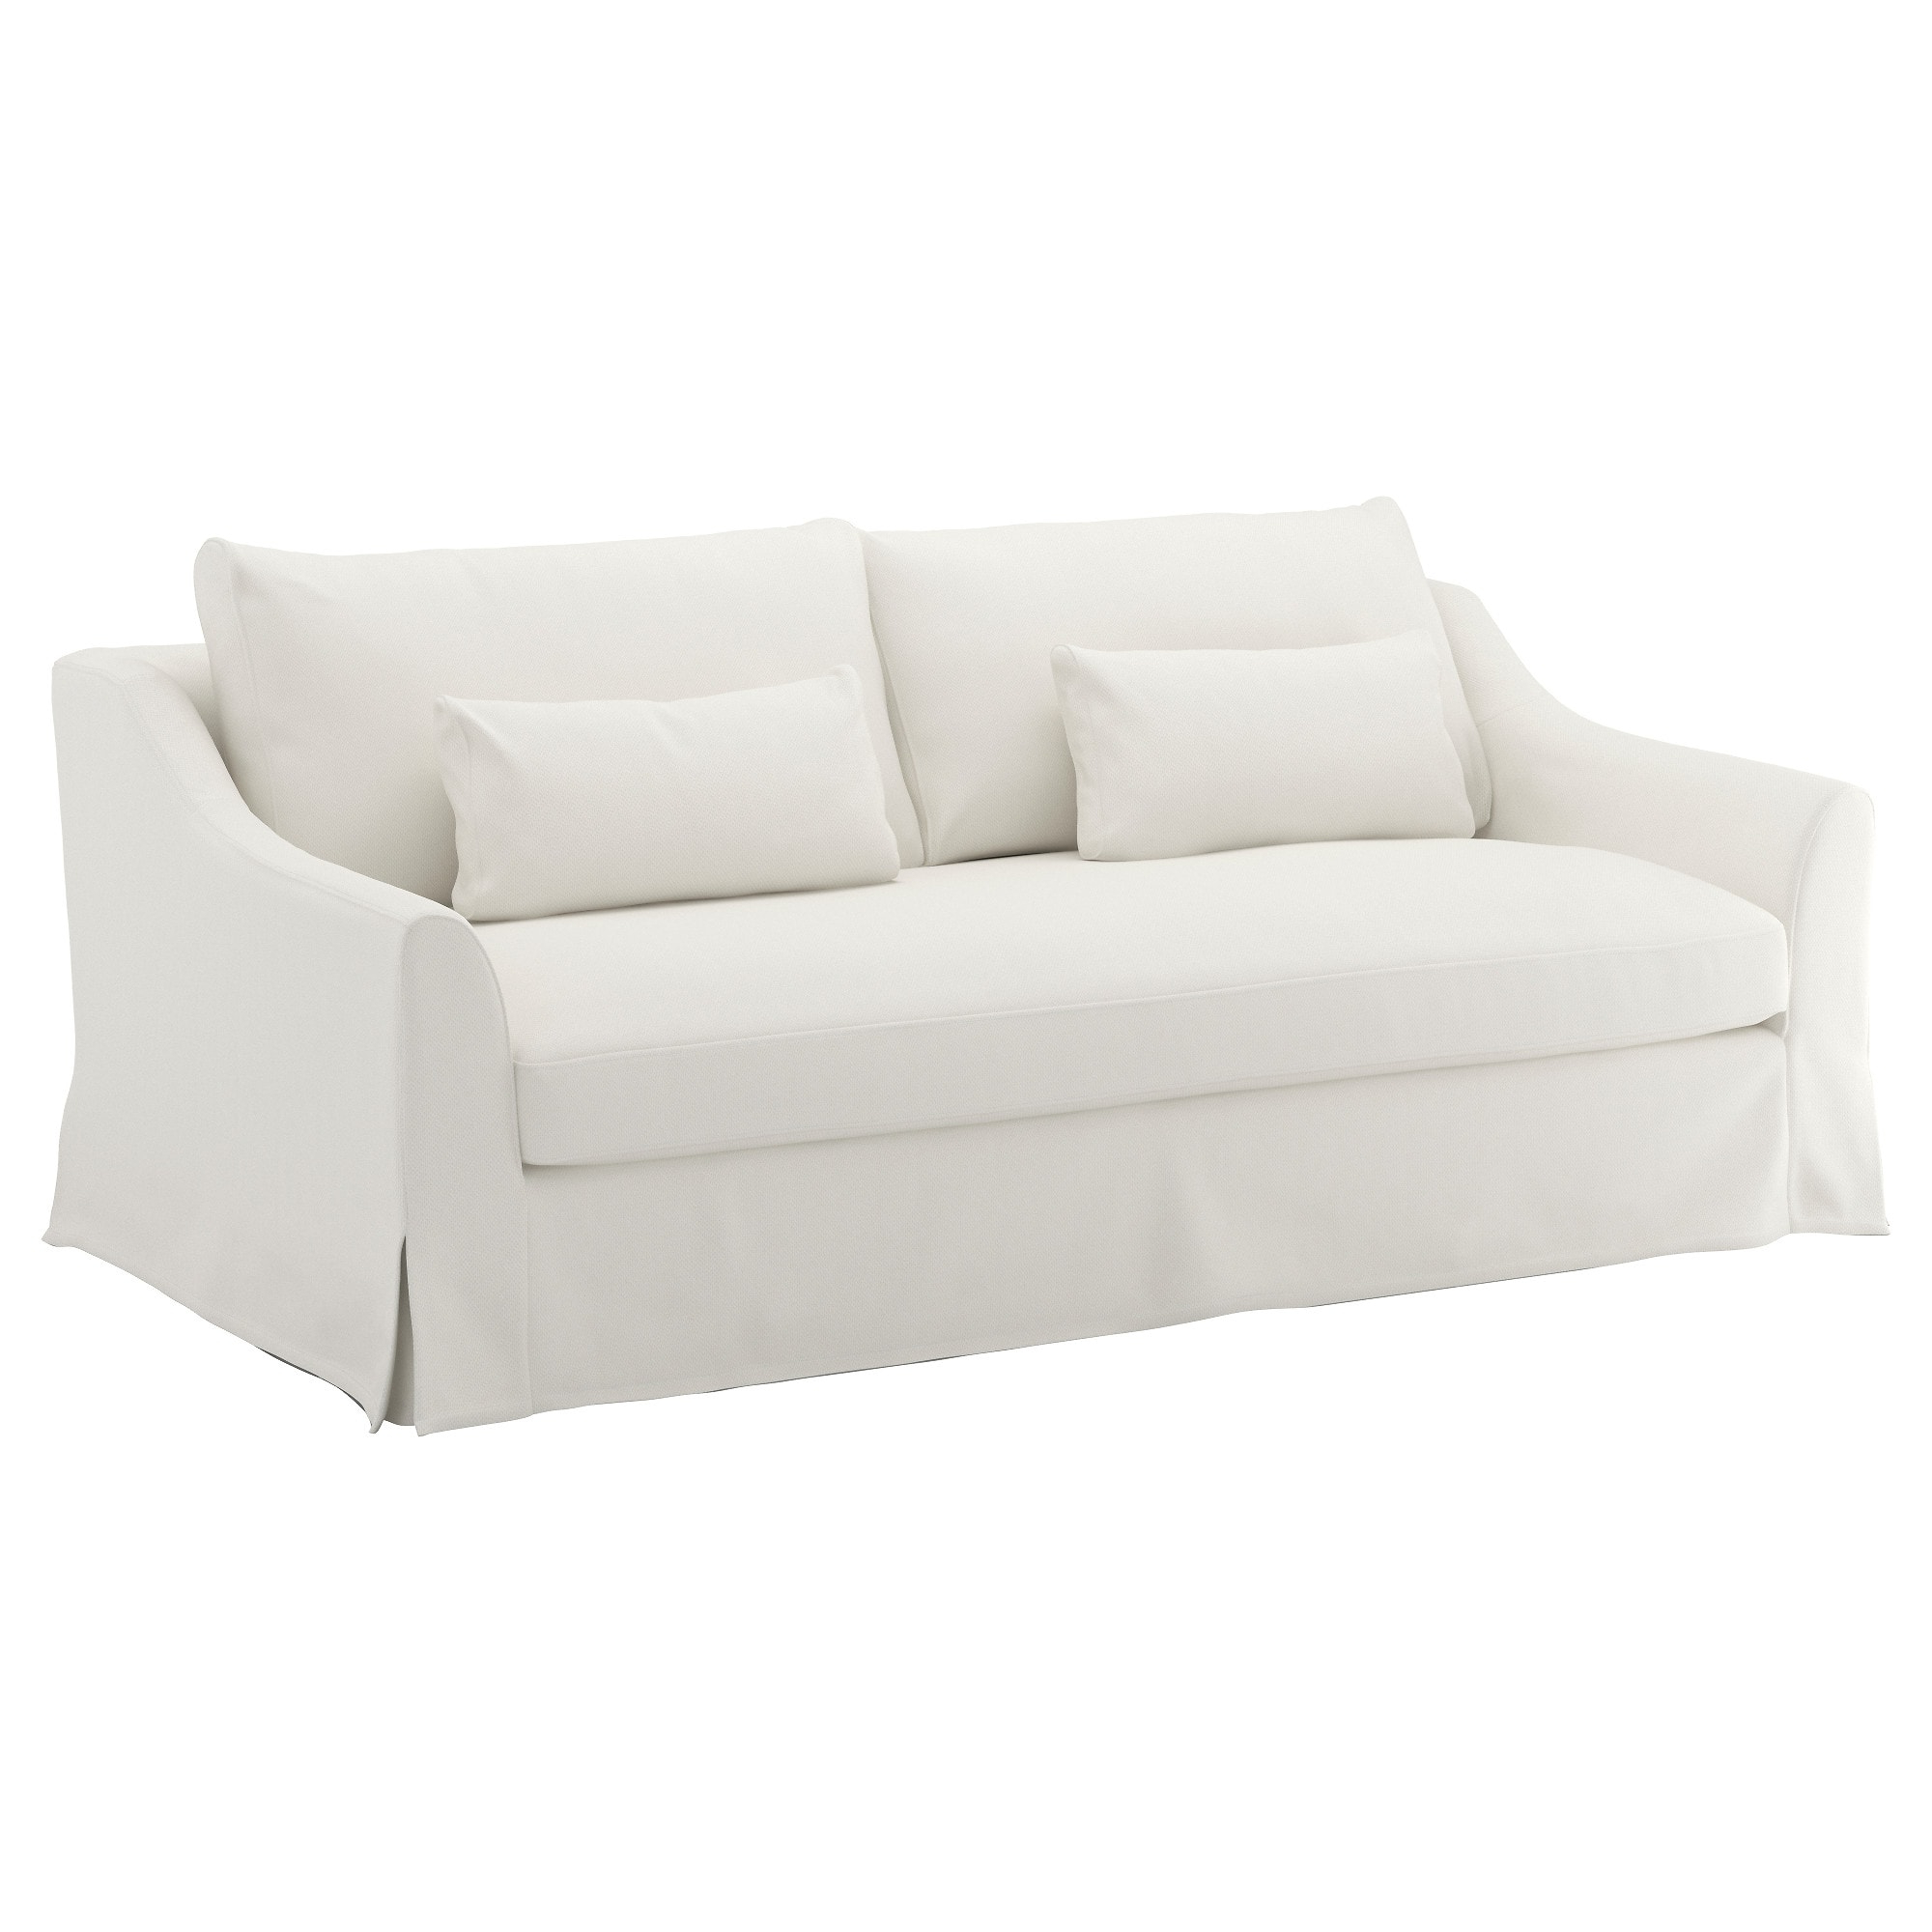 Well Known Färlöv 3 Seat Sofa Flodafors White – Ikea Pertaining To Ikea Sofa Chairs (Gallery 15 of 20)